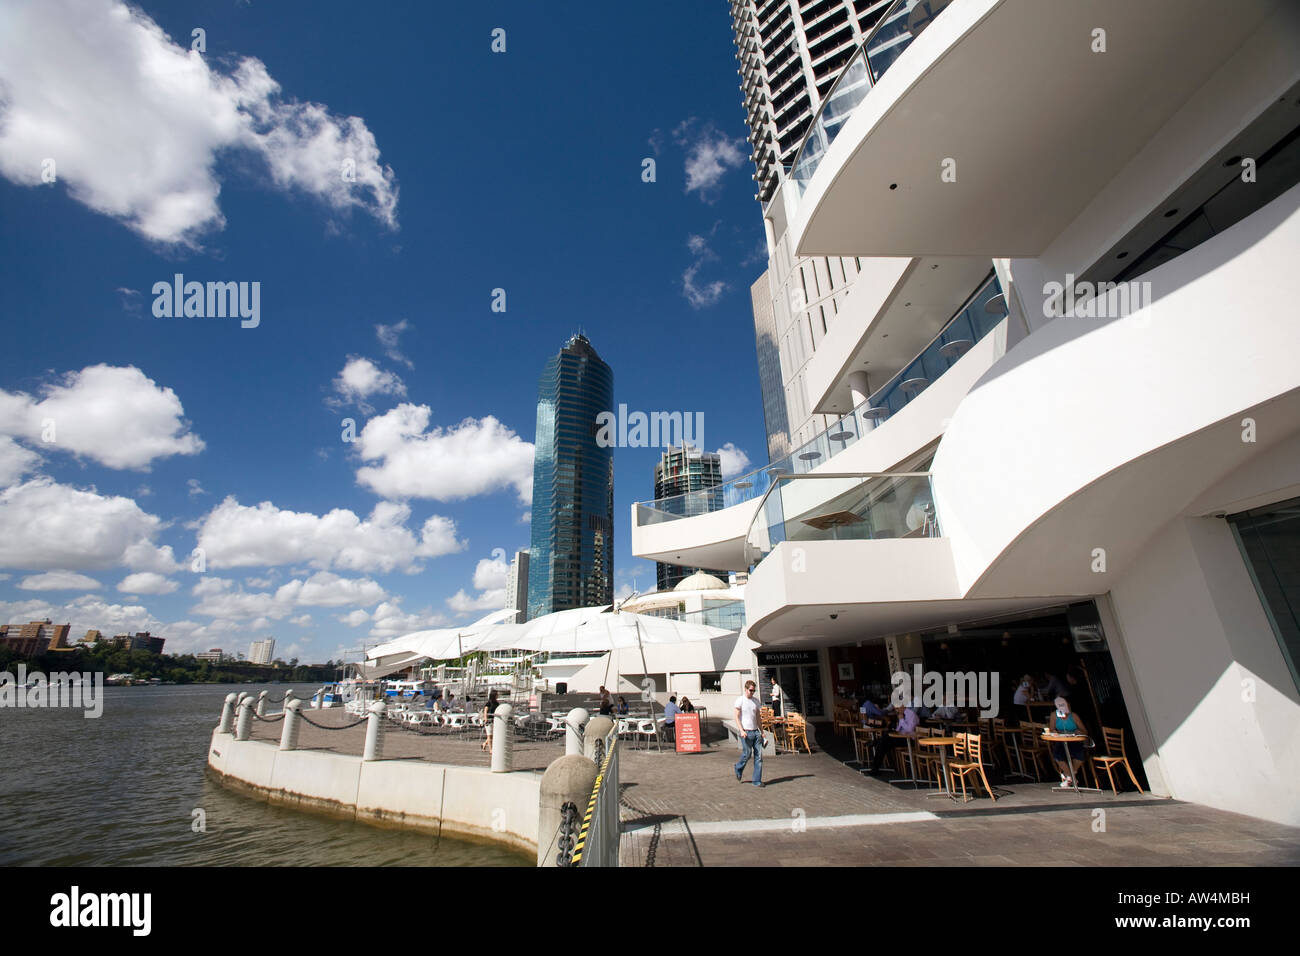 brisbane's riverside promenade with office buildings,cafe and brisbane river - Stock Image